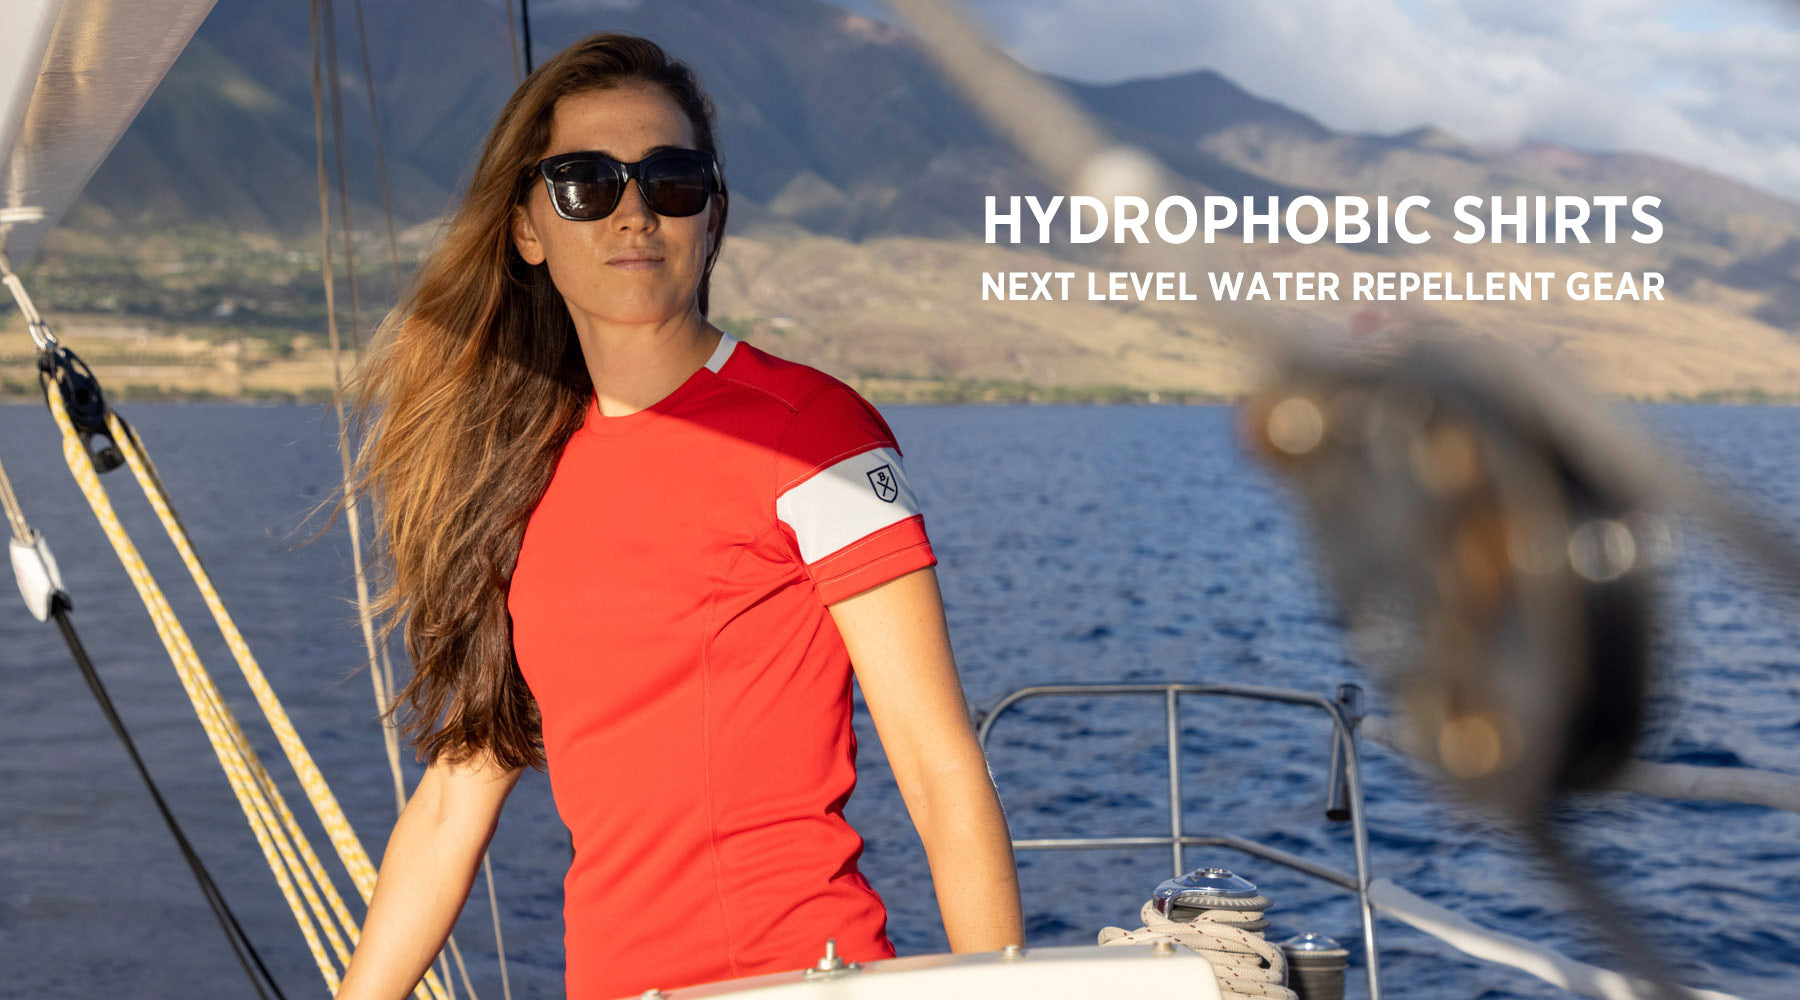 Hydrophobic Water-Repellent Shirts by Bluesmiths